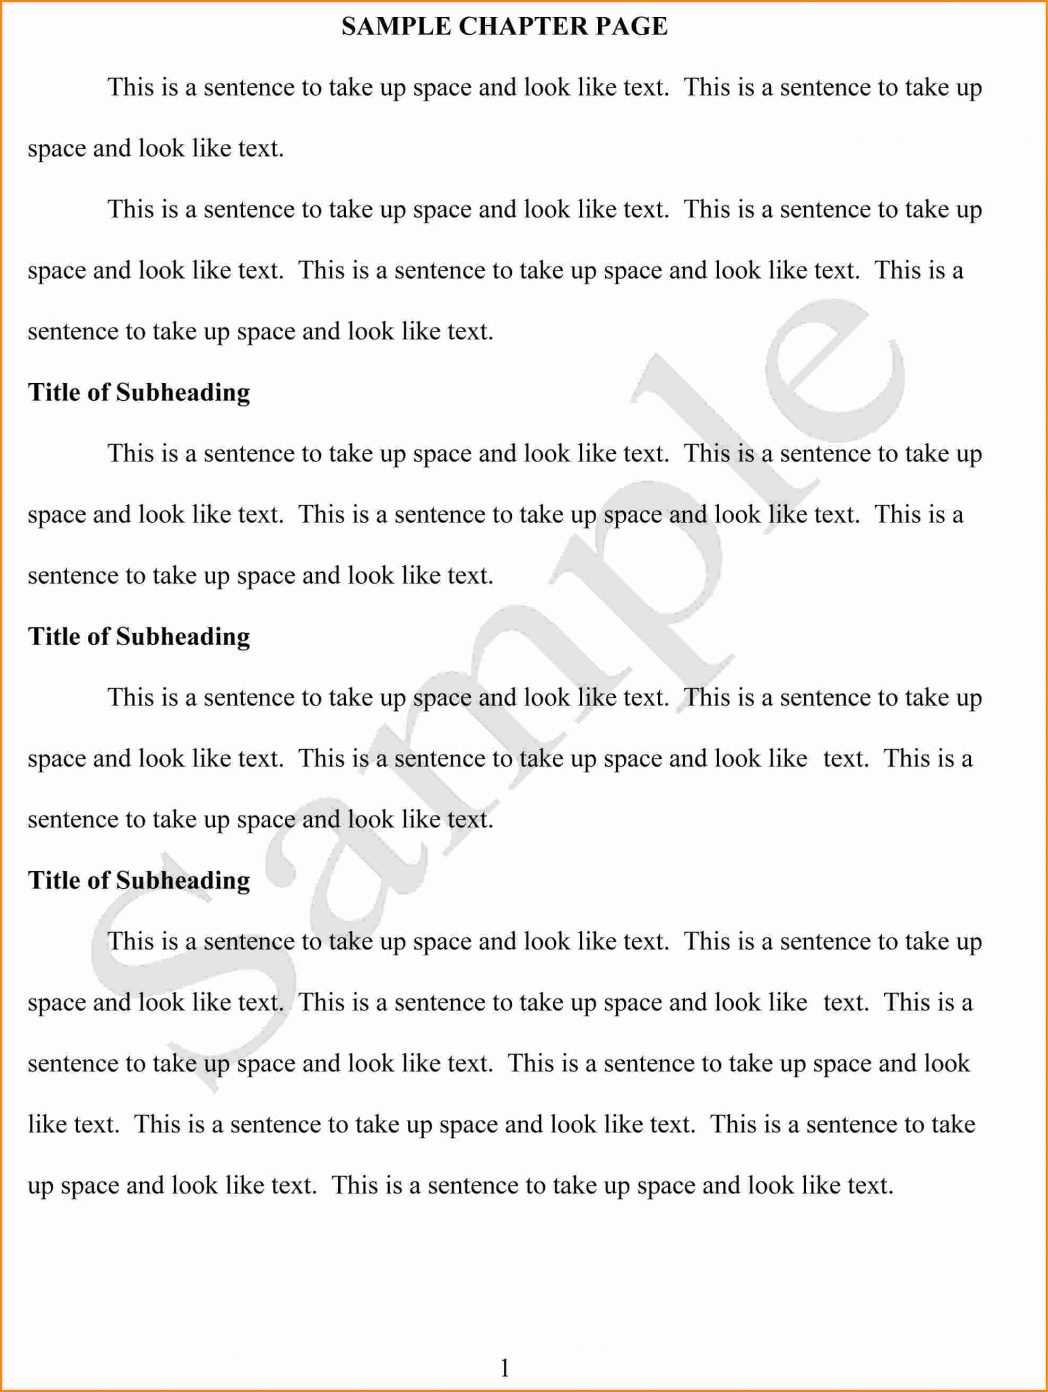 008 Parvana Essay Sample Thesis Statement Ssat Writing Promptss For Essays Psych Prompt New Sat 1048x1392 Surprising Pdf 2017 Full